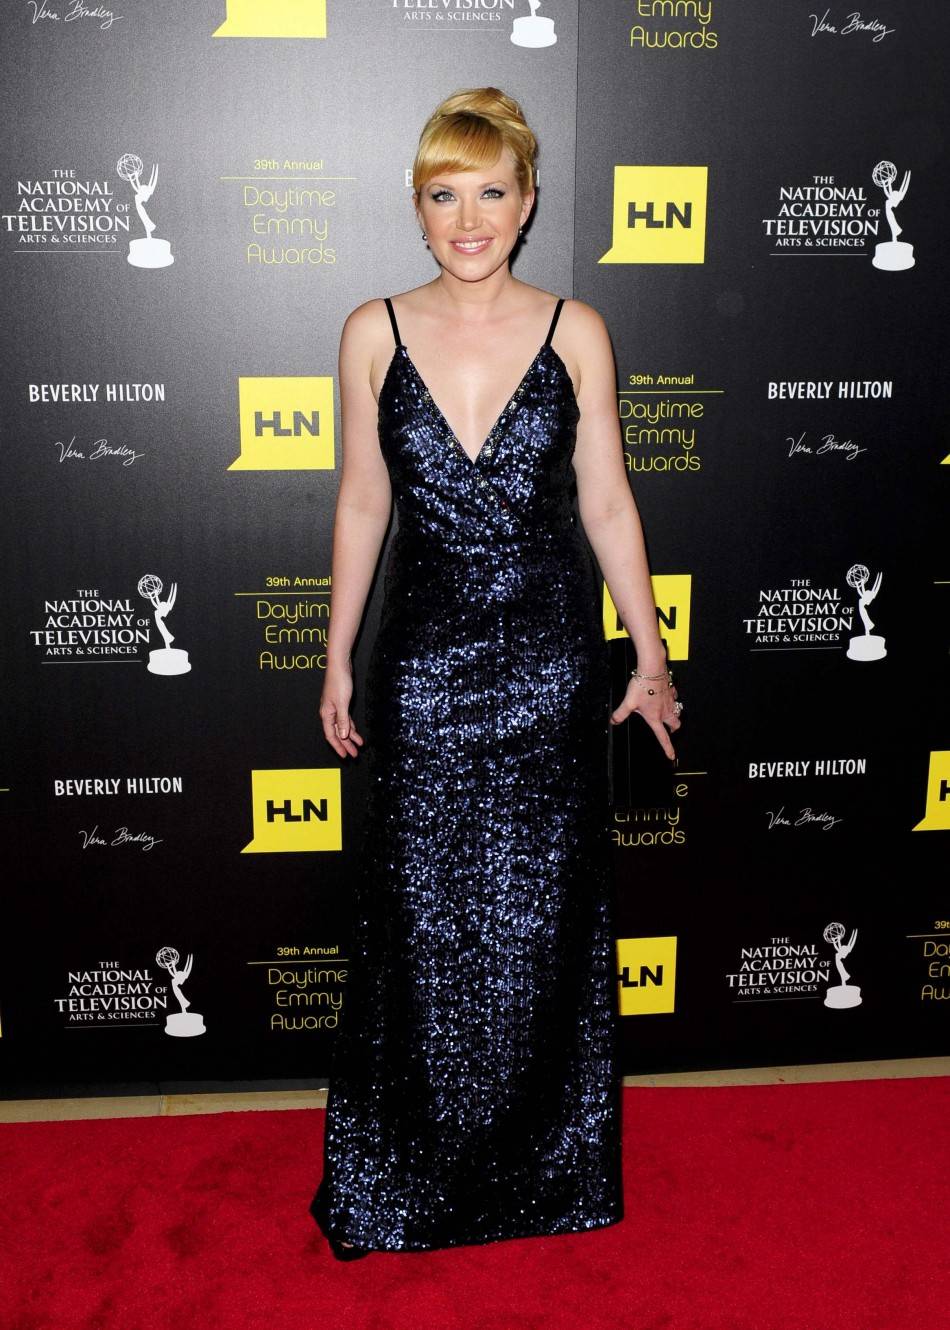 Adrienne Frantz arrives at the 39th Daytime Emmy Awards in Beverly Hills